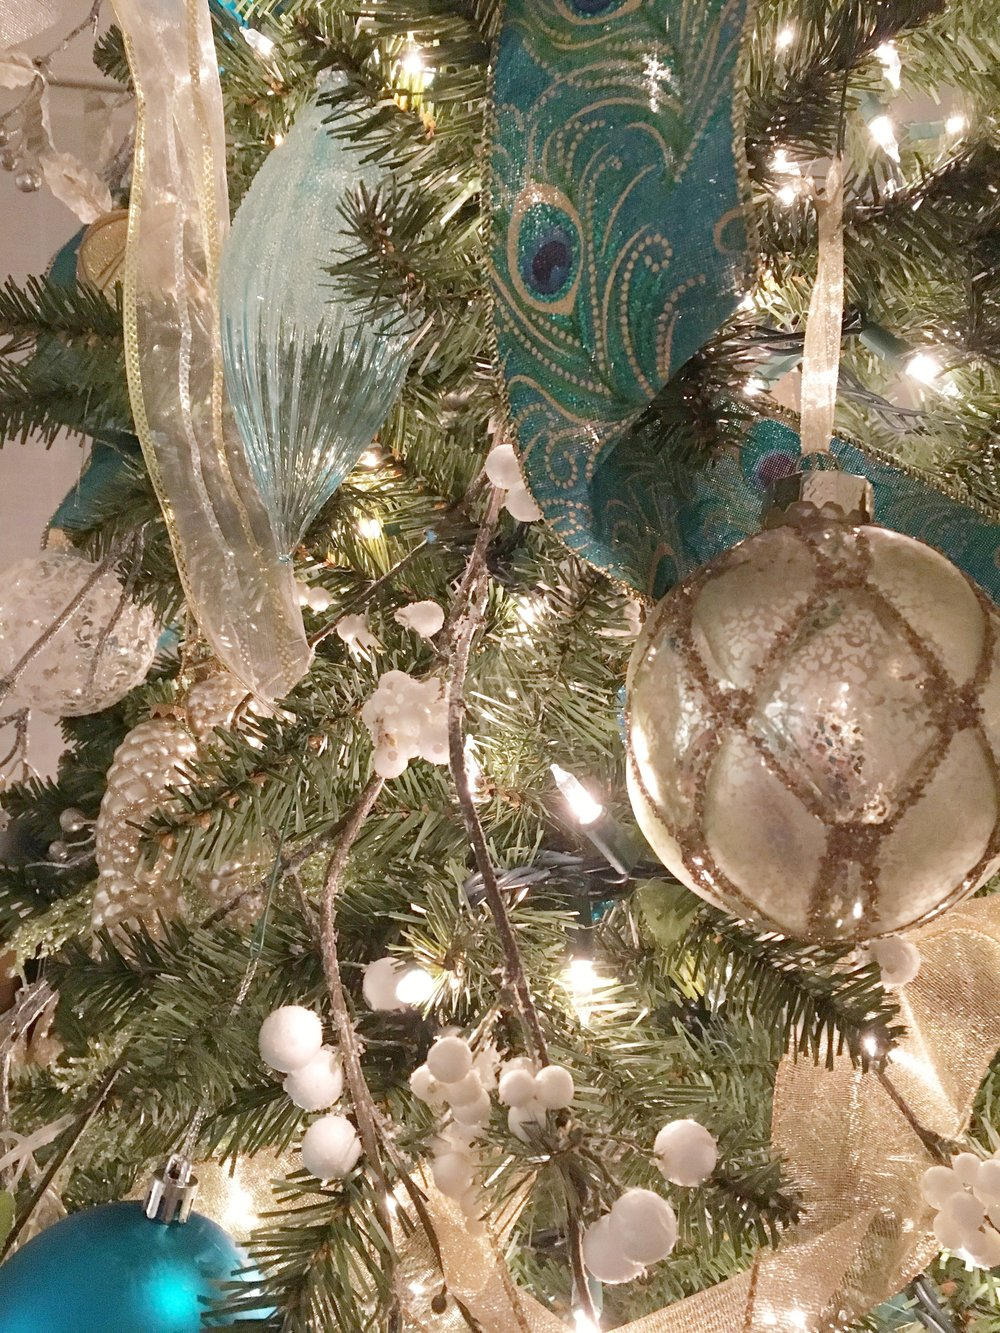 The client's ornaments mixed with new ornaments, berry branches, and an abundance of ribbon make a striking statement tree